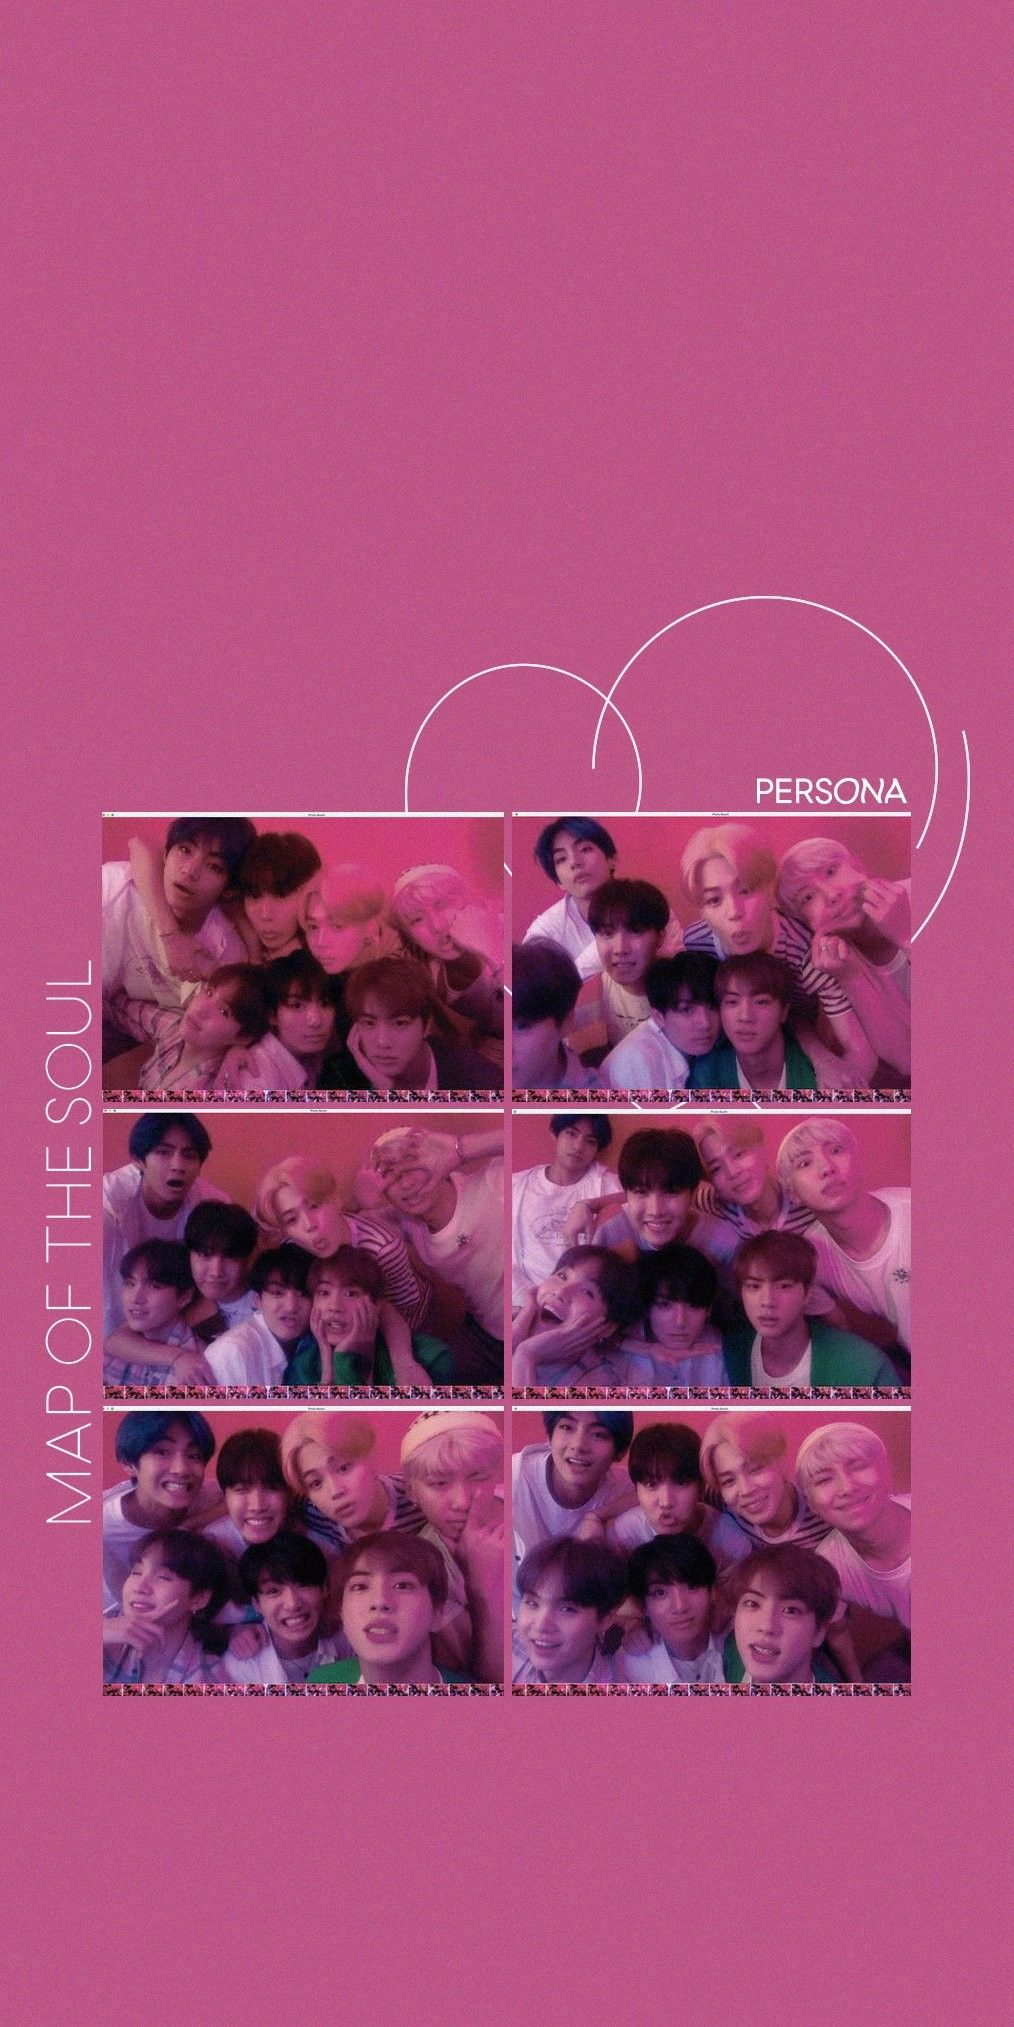 Bts Wallpapers Map Of The Soul Persona Concept Photo Wallpaper